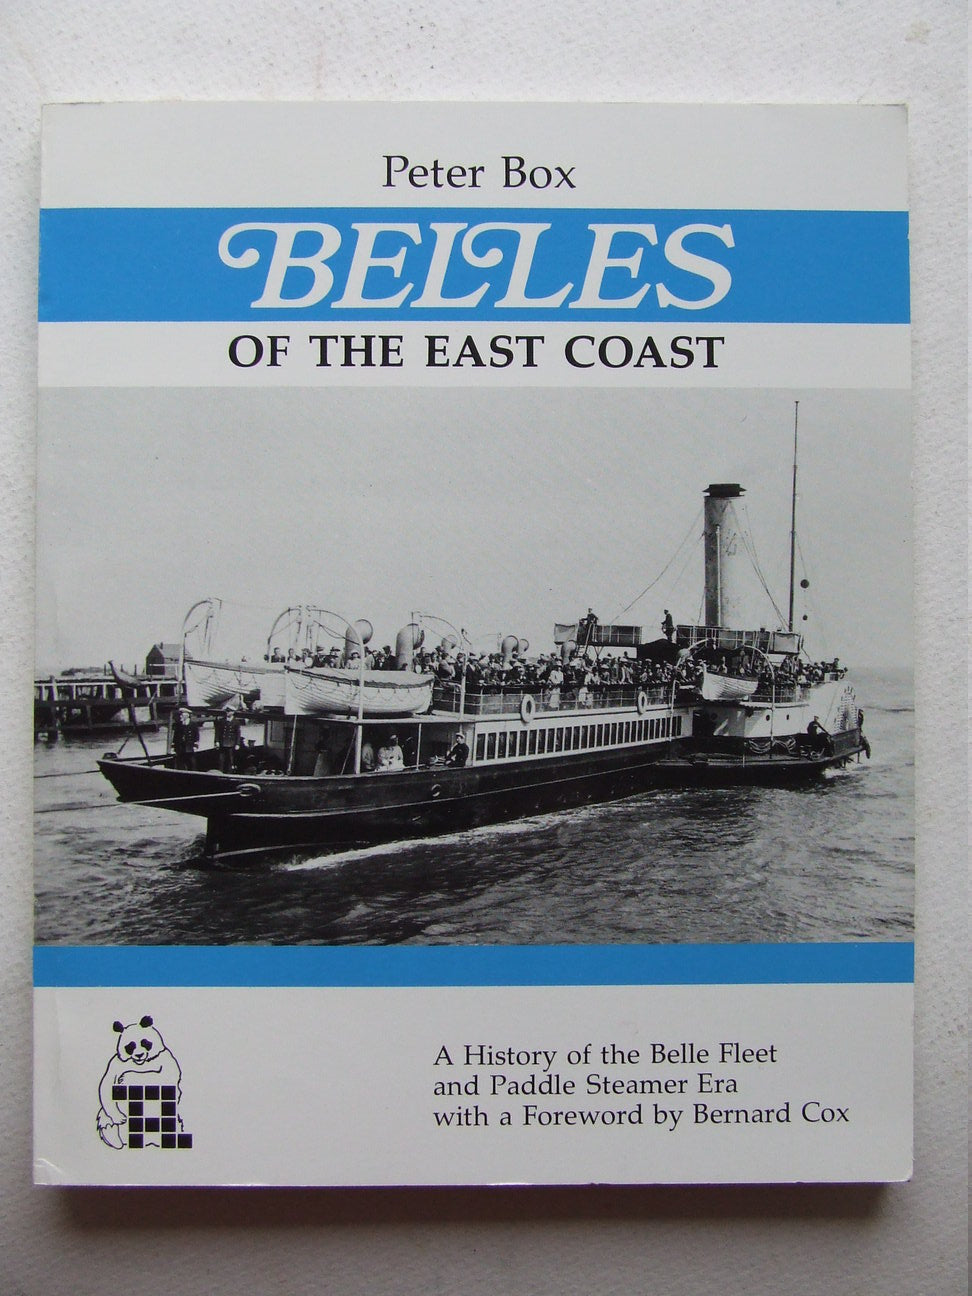 Belles of the East Coast